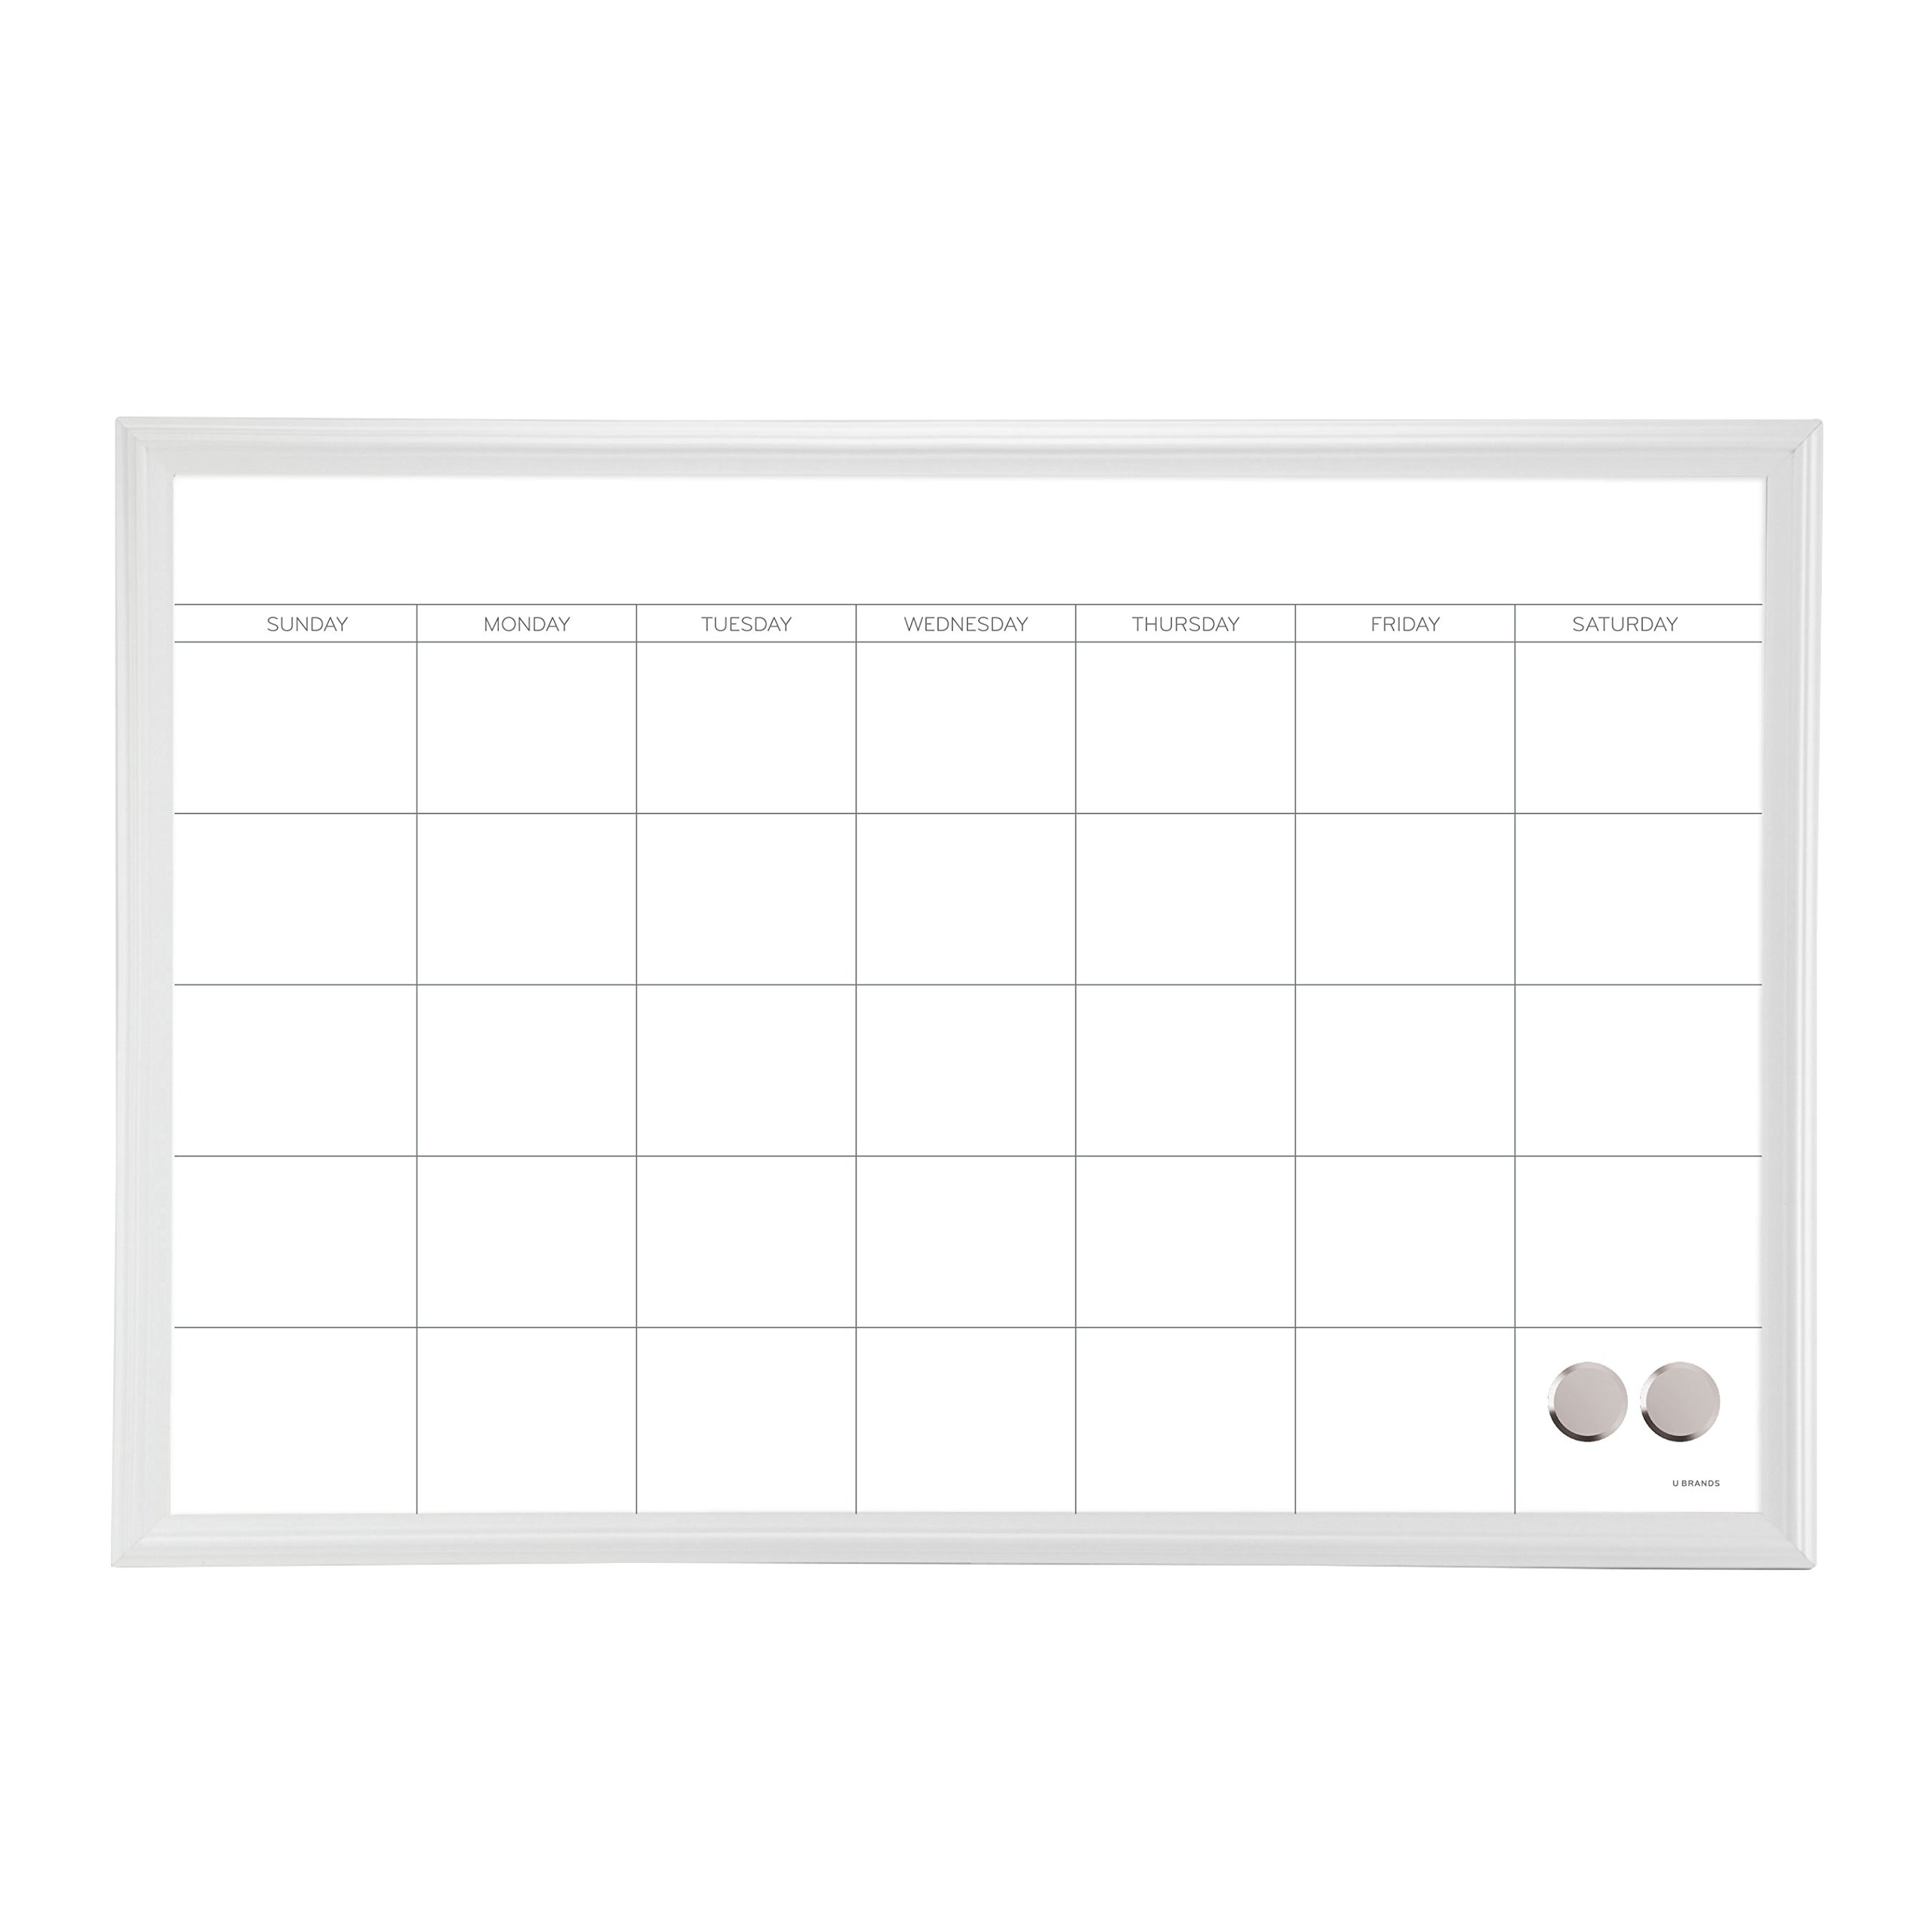 U Brands Magnetic Dry Erase Calendar Board, 20 x 30 Inches, White Wood Frame